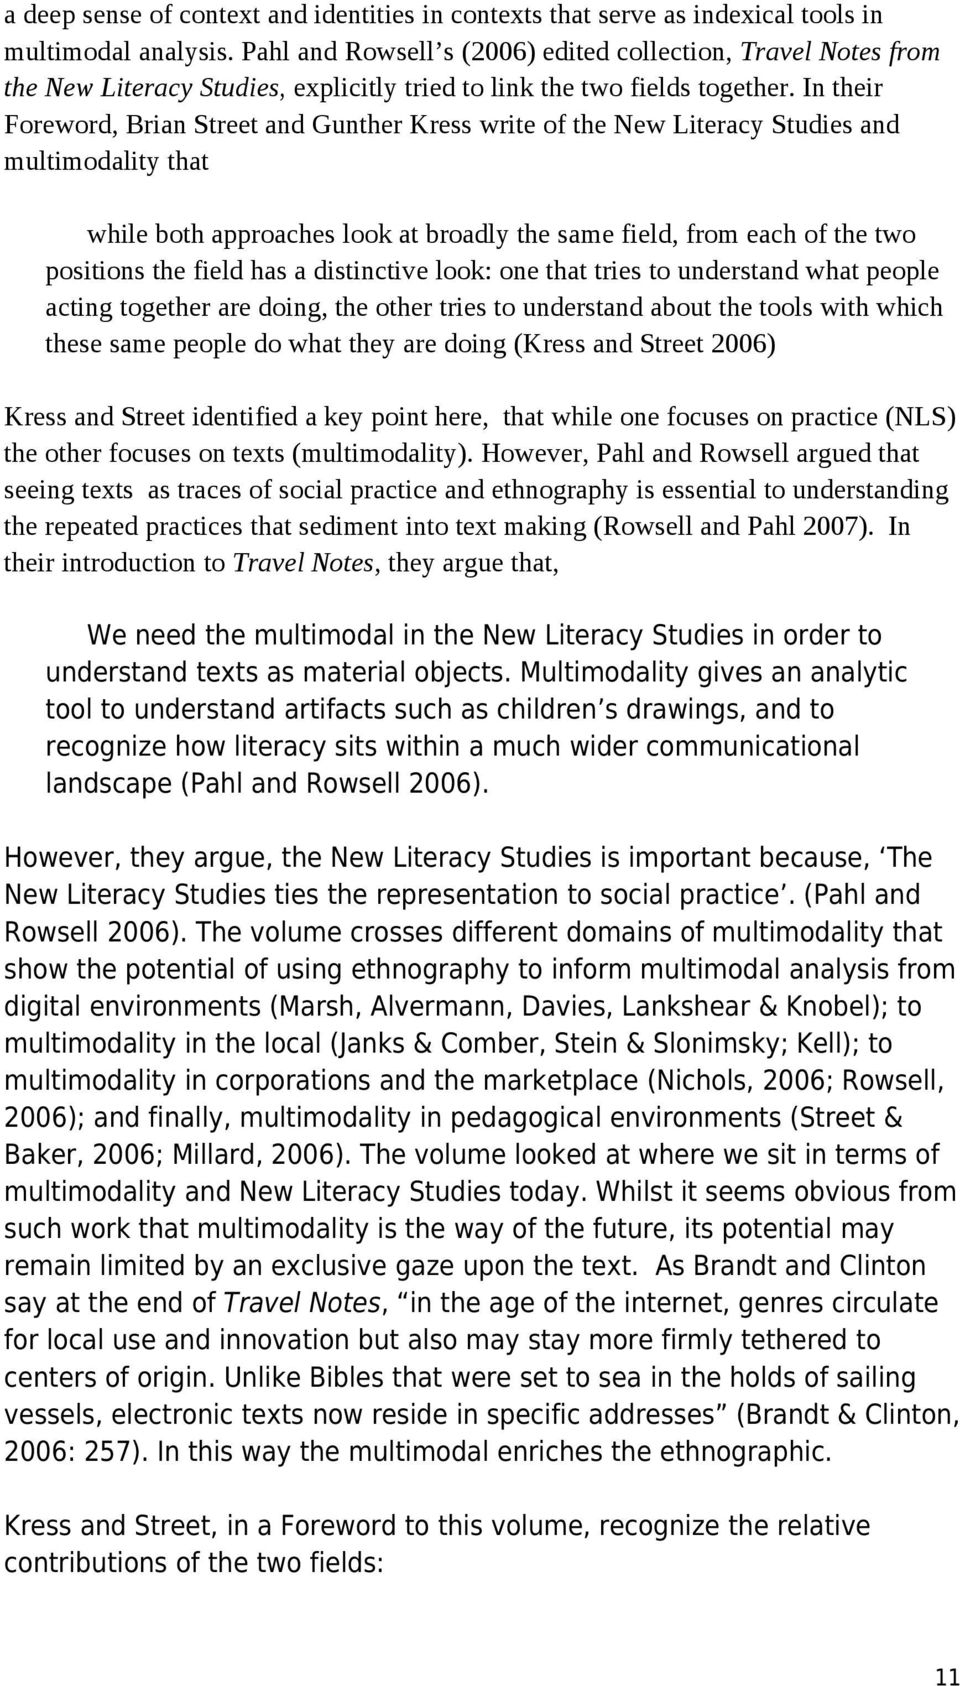 In their Foreword, Brian Street and Gunther Kress write of the New Literacy Studies and multimodality that while both approaches look at broadly the same field, from each of the two positions the